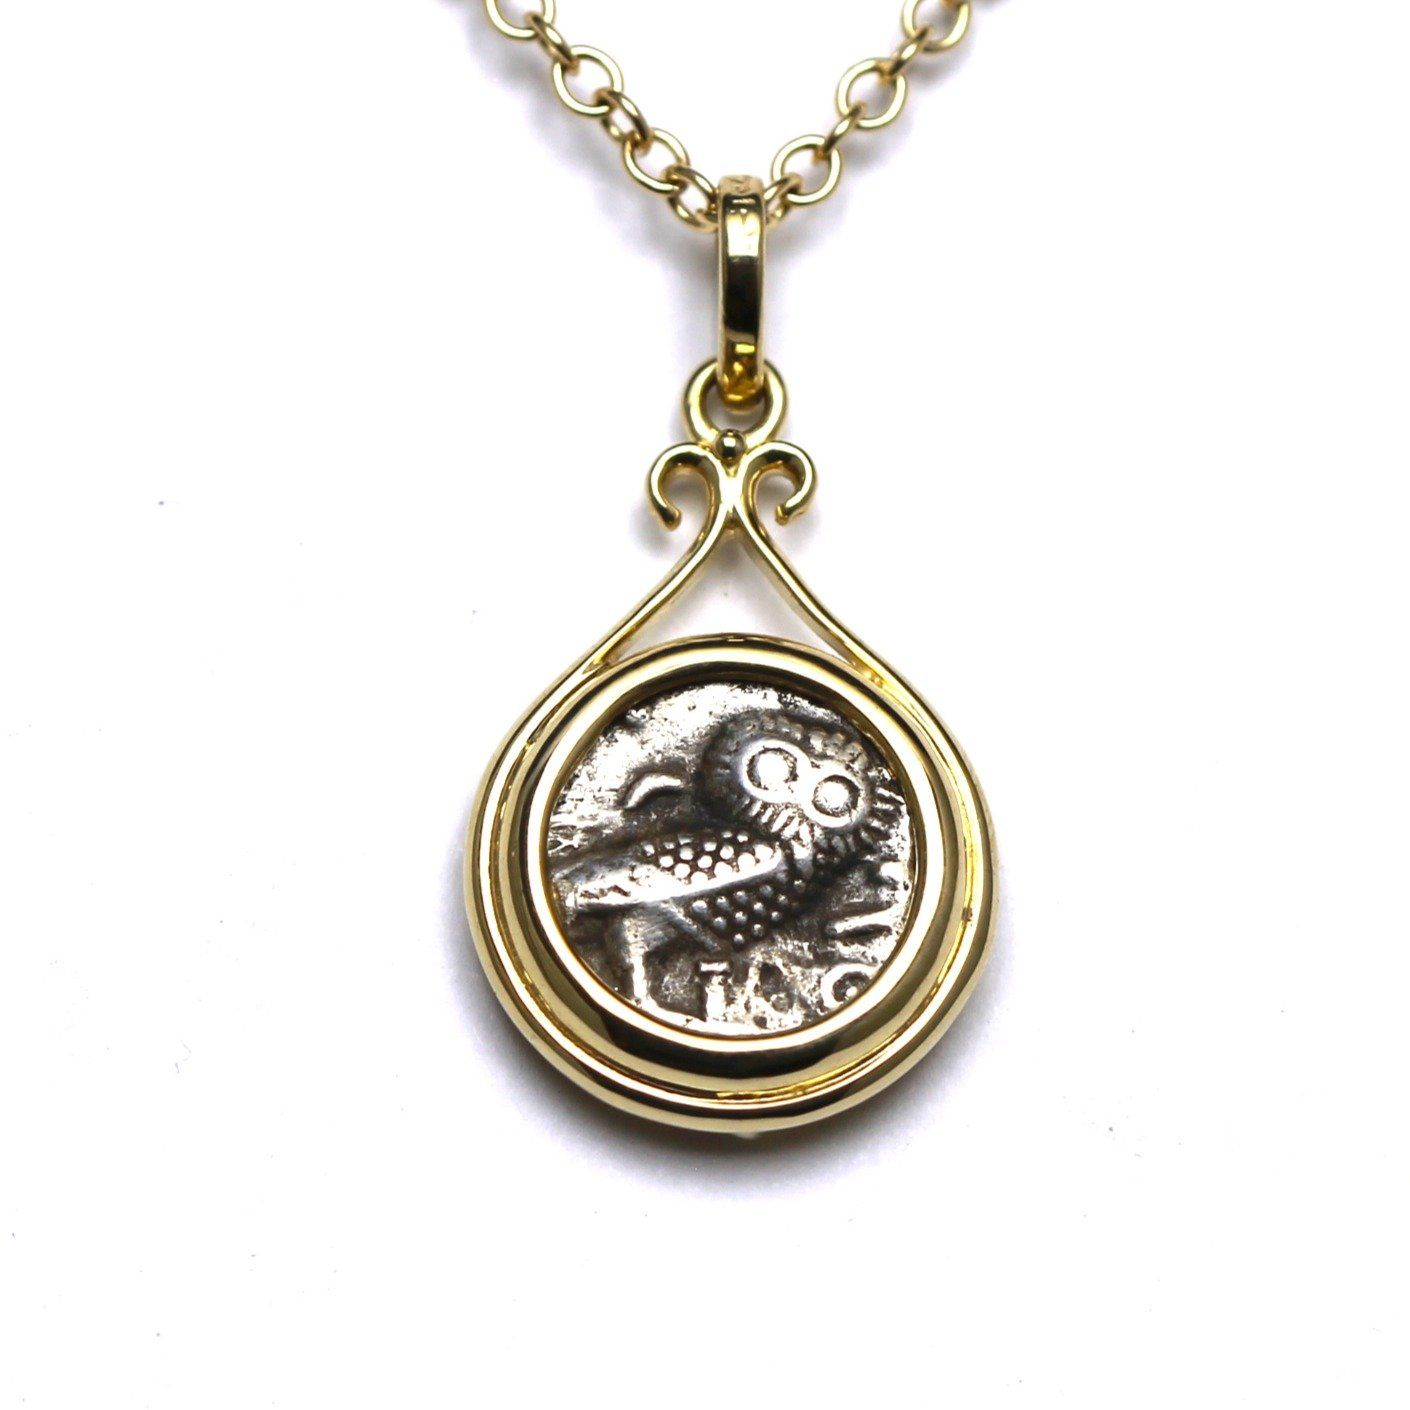 14K Gold Pendant, Arabian Owl, Ancient Greek Coin,  Cert. ID13124 - Erez Ancient Coin Jewelry